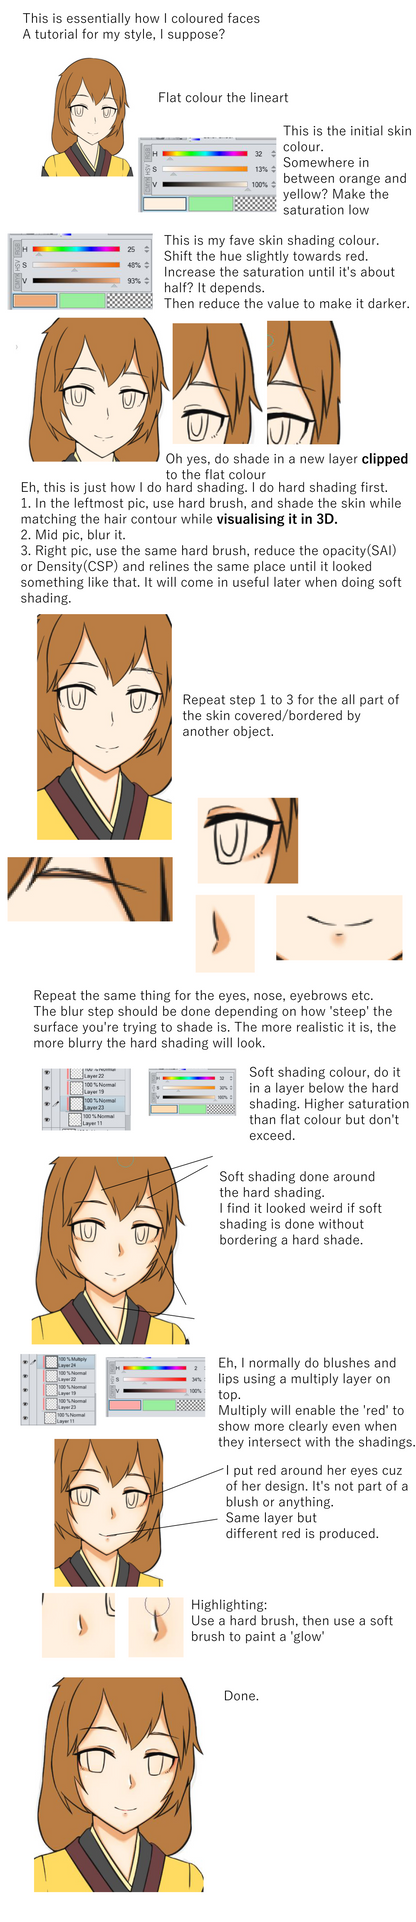 Face tutorial by GGSalmon